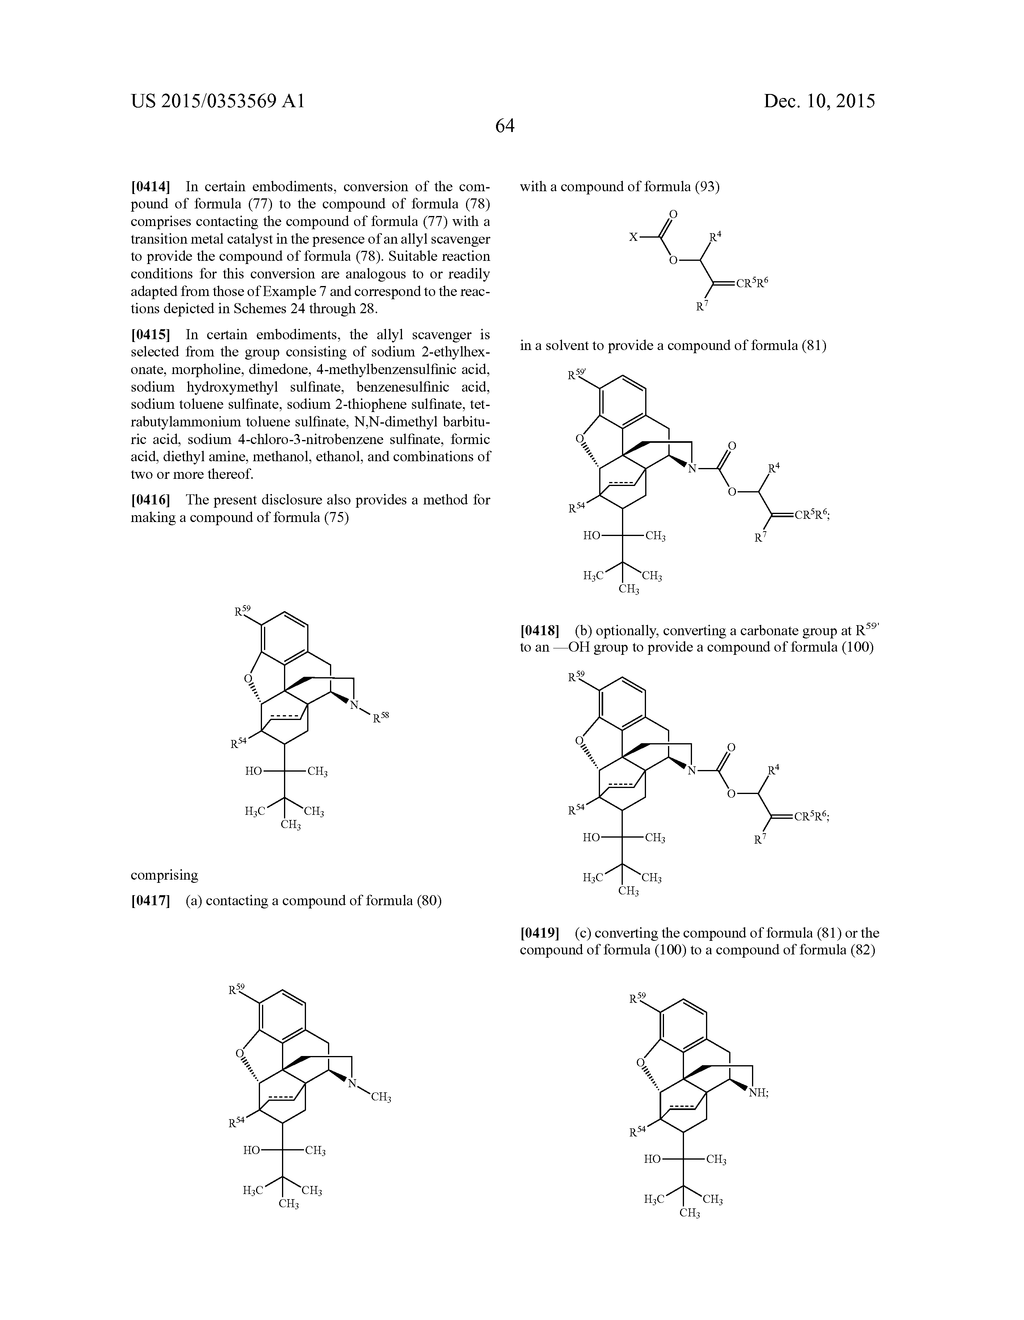 TRANSITION METAL-CATALYZED PROCESSES FOR THE PREPARATION OF N-ALLYL     COMPOUNDS AND USE THEREOF - diagram, schematic, and image 65